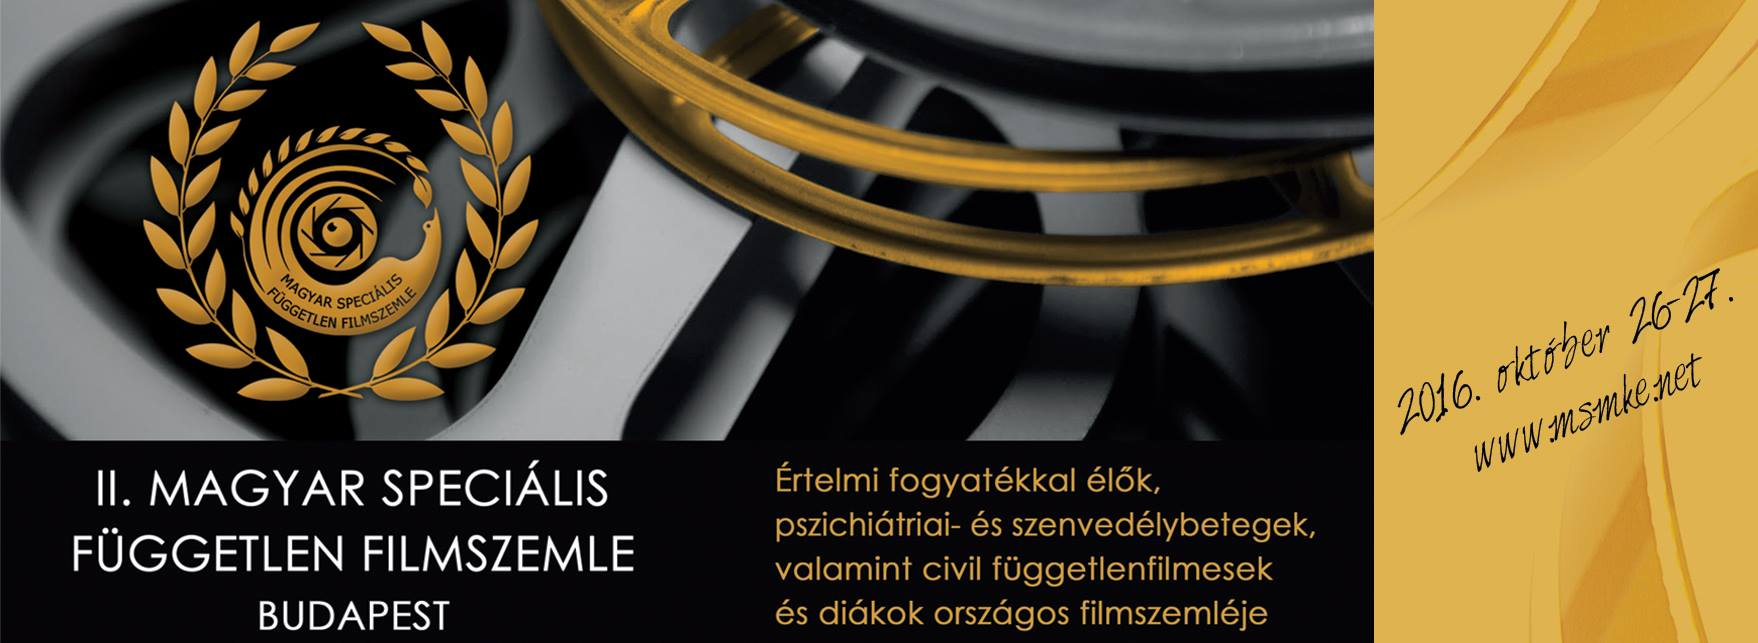 spec-filmszemle_flyer